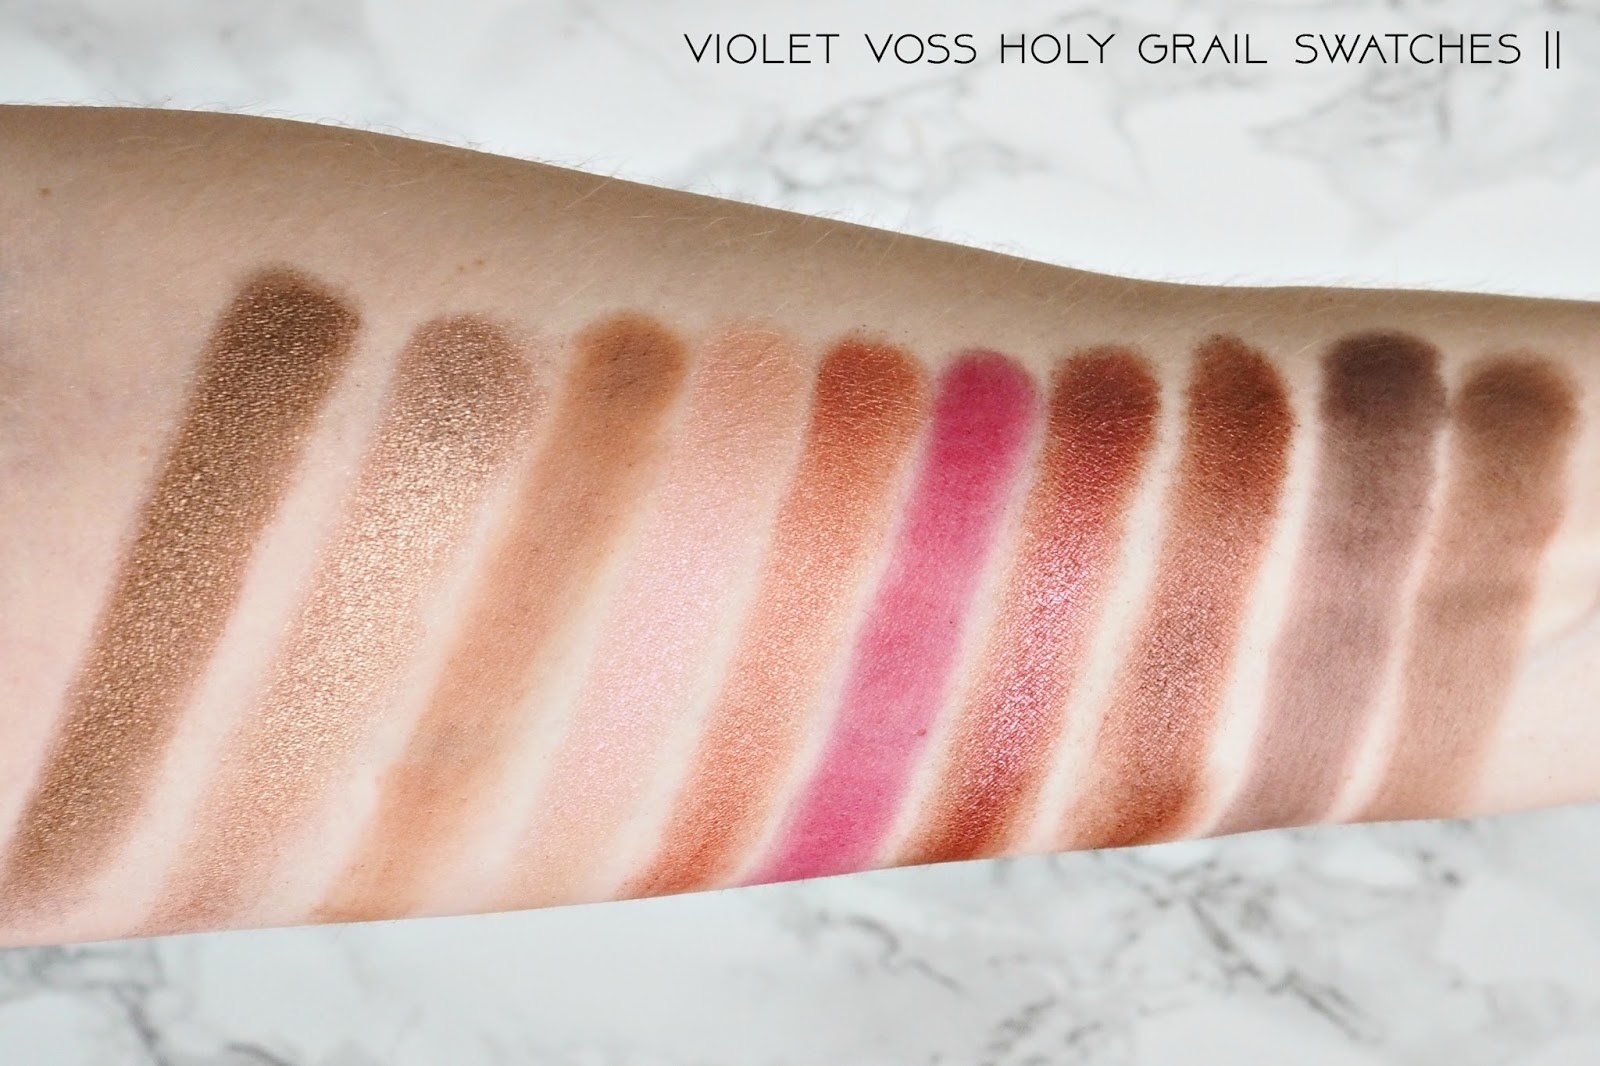 Violet Voss Holy Grail palette Swatches